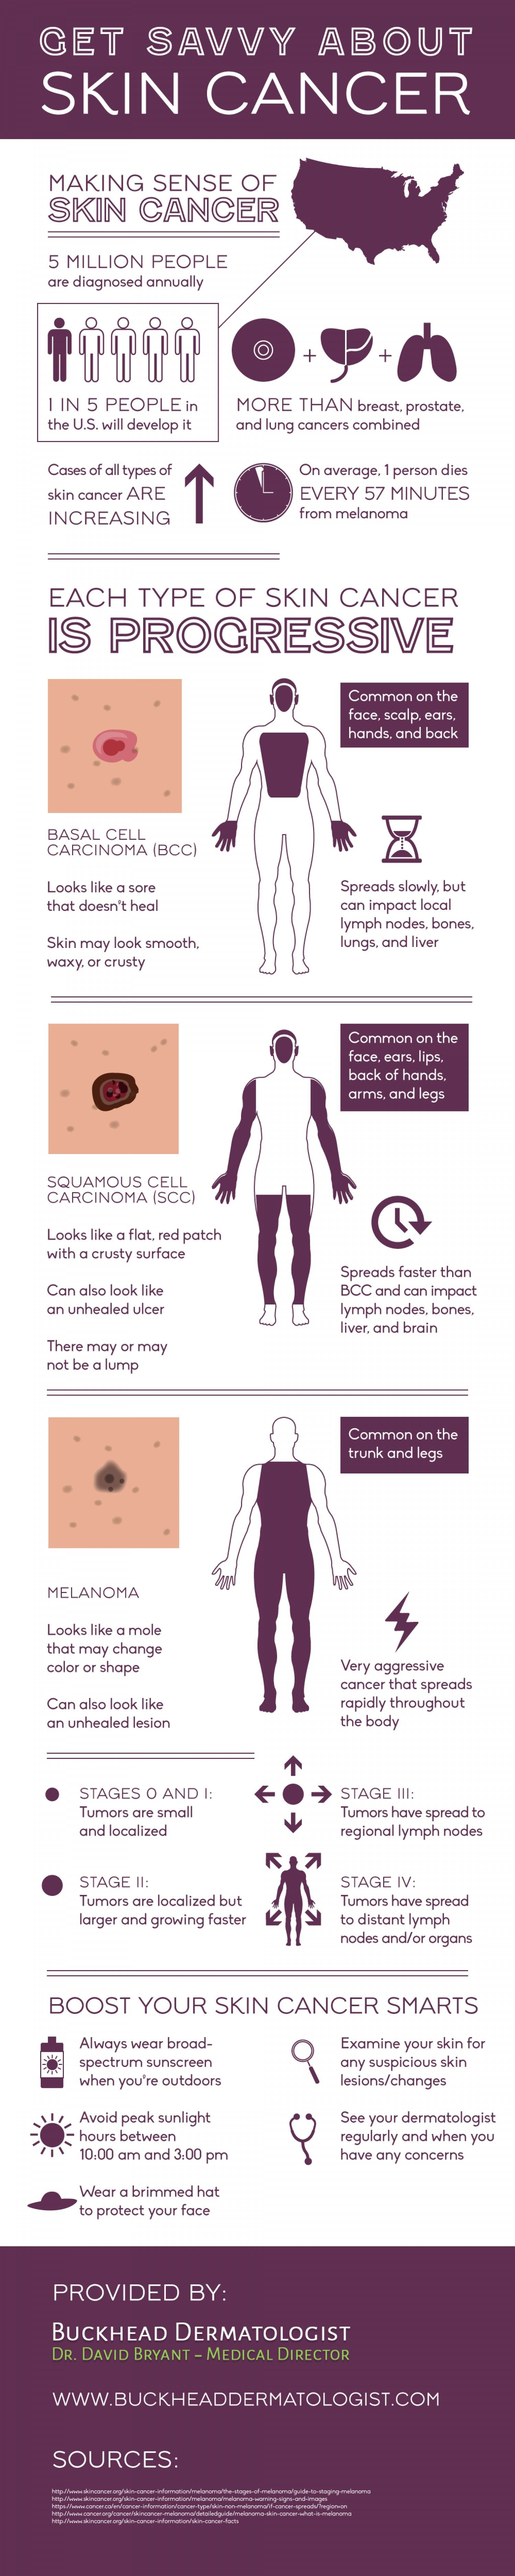 small resolution of did you know that 5 million people are diagnosed with skin cancer each year